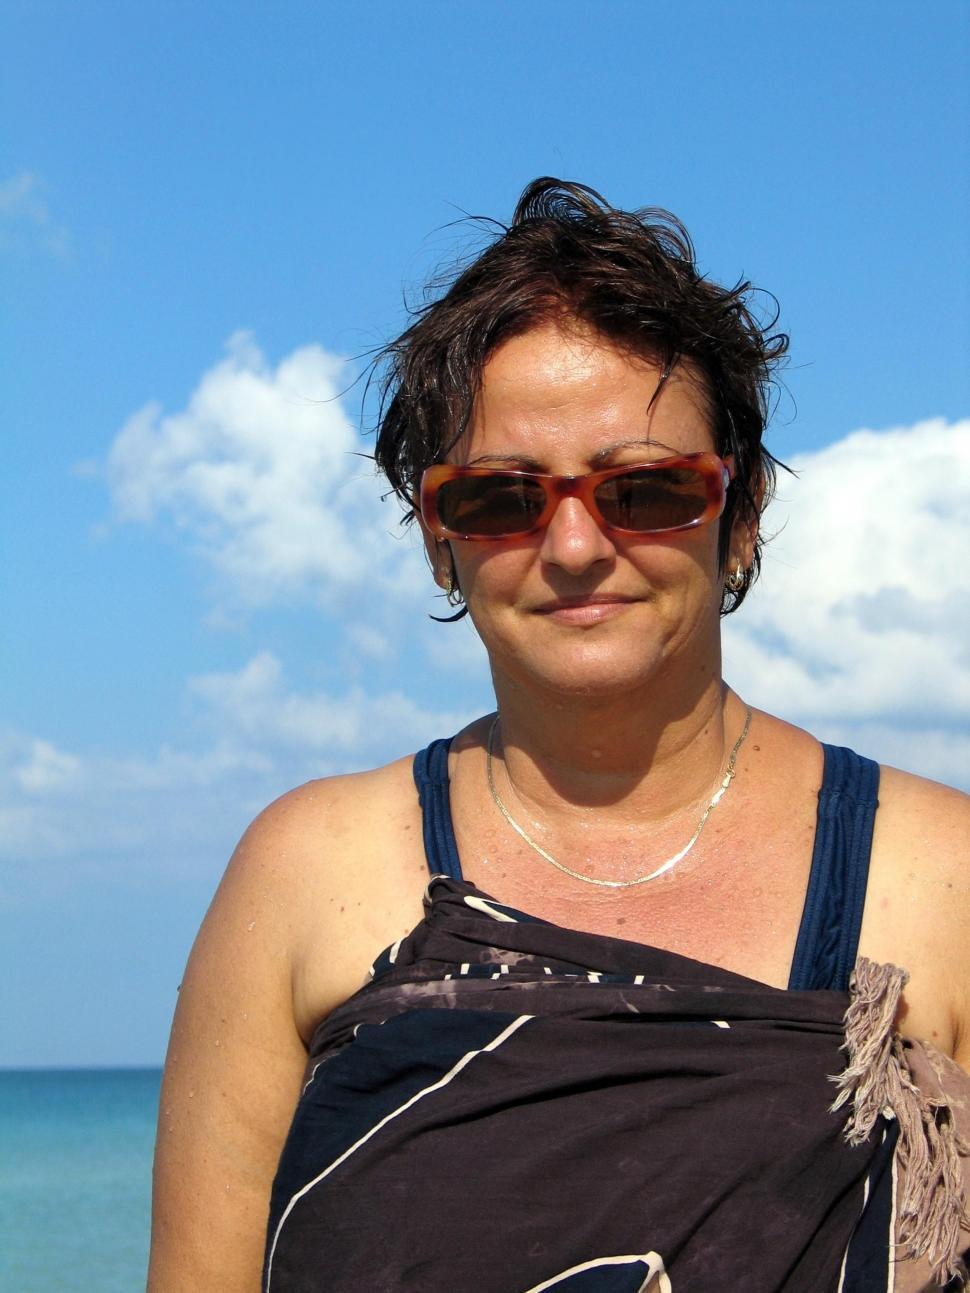 Free image of Portrait of woman wearing sunglasses on the beach